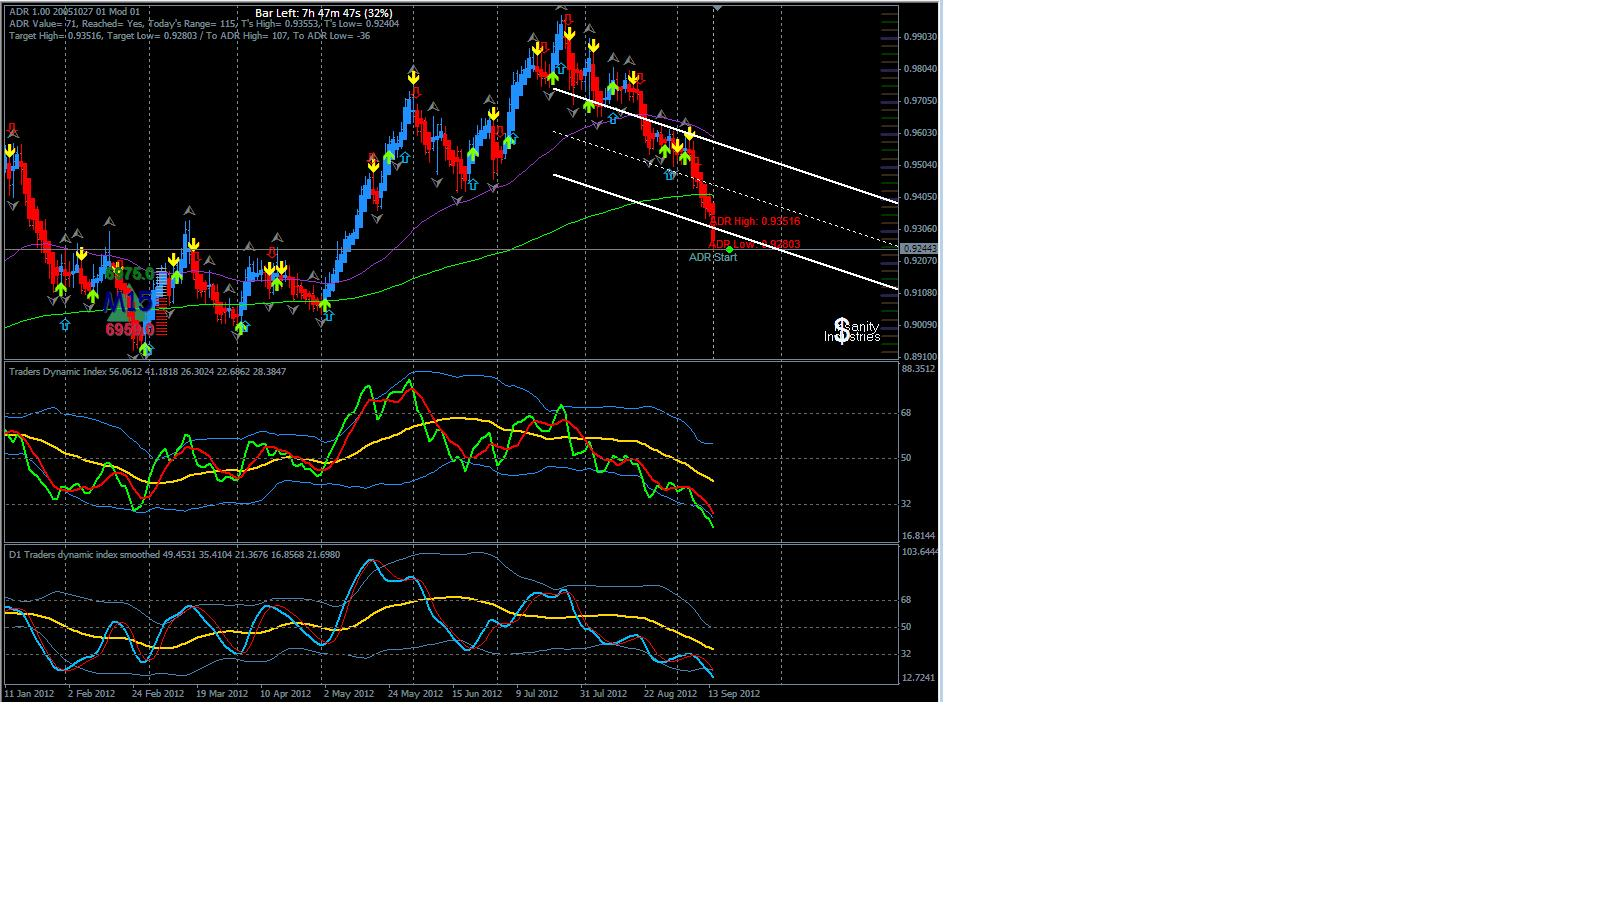 Tdi ea - Currency Trading - MQL4 and MetaTrader 4 - MQL4 programming